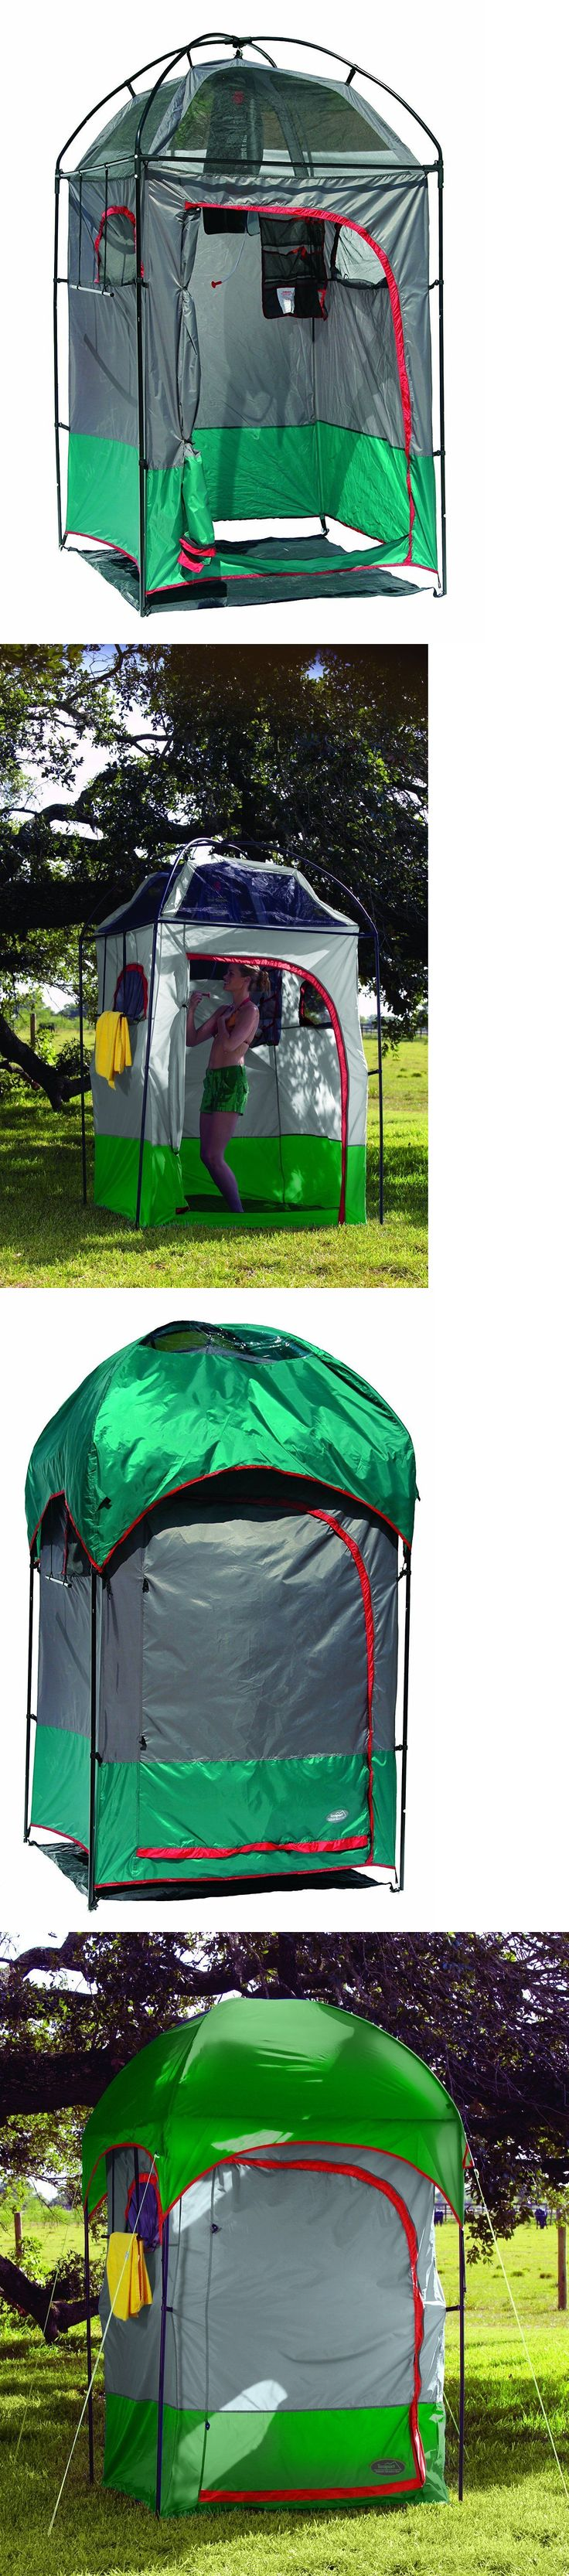 Portable Showers and Accessories 181396: Camping Shower Tent Portable Outdoor Privacy Shelter Changing Room Camp New -> BUY IT NOW ONLY: $122.88 on eBay!